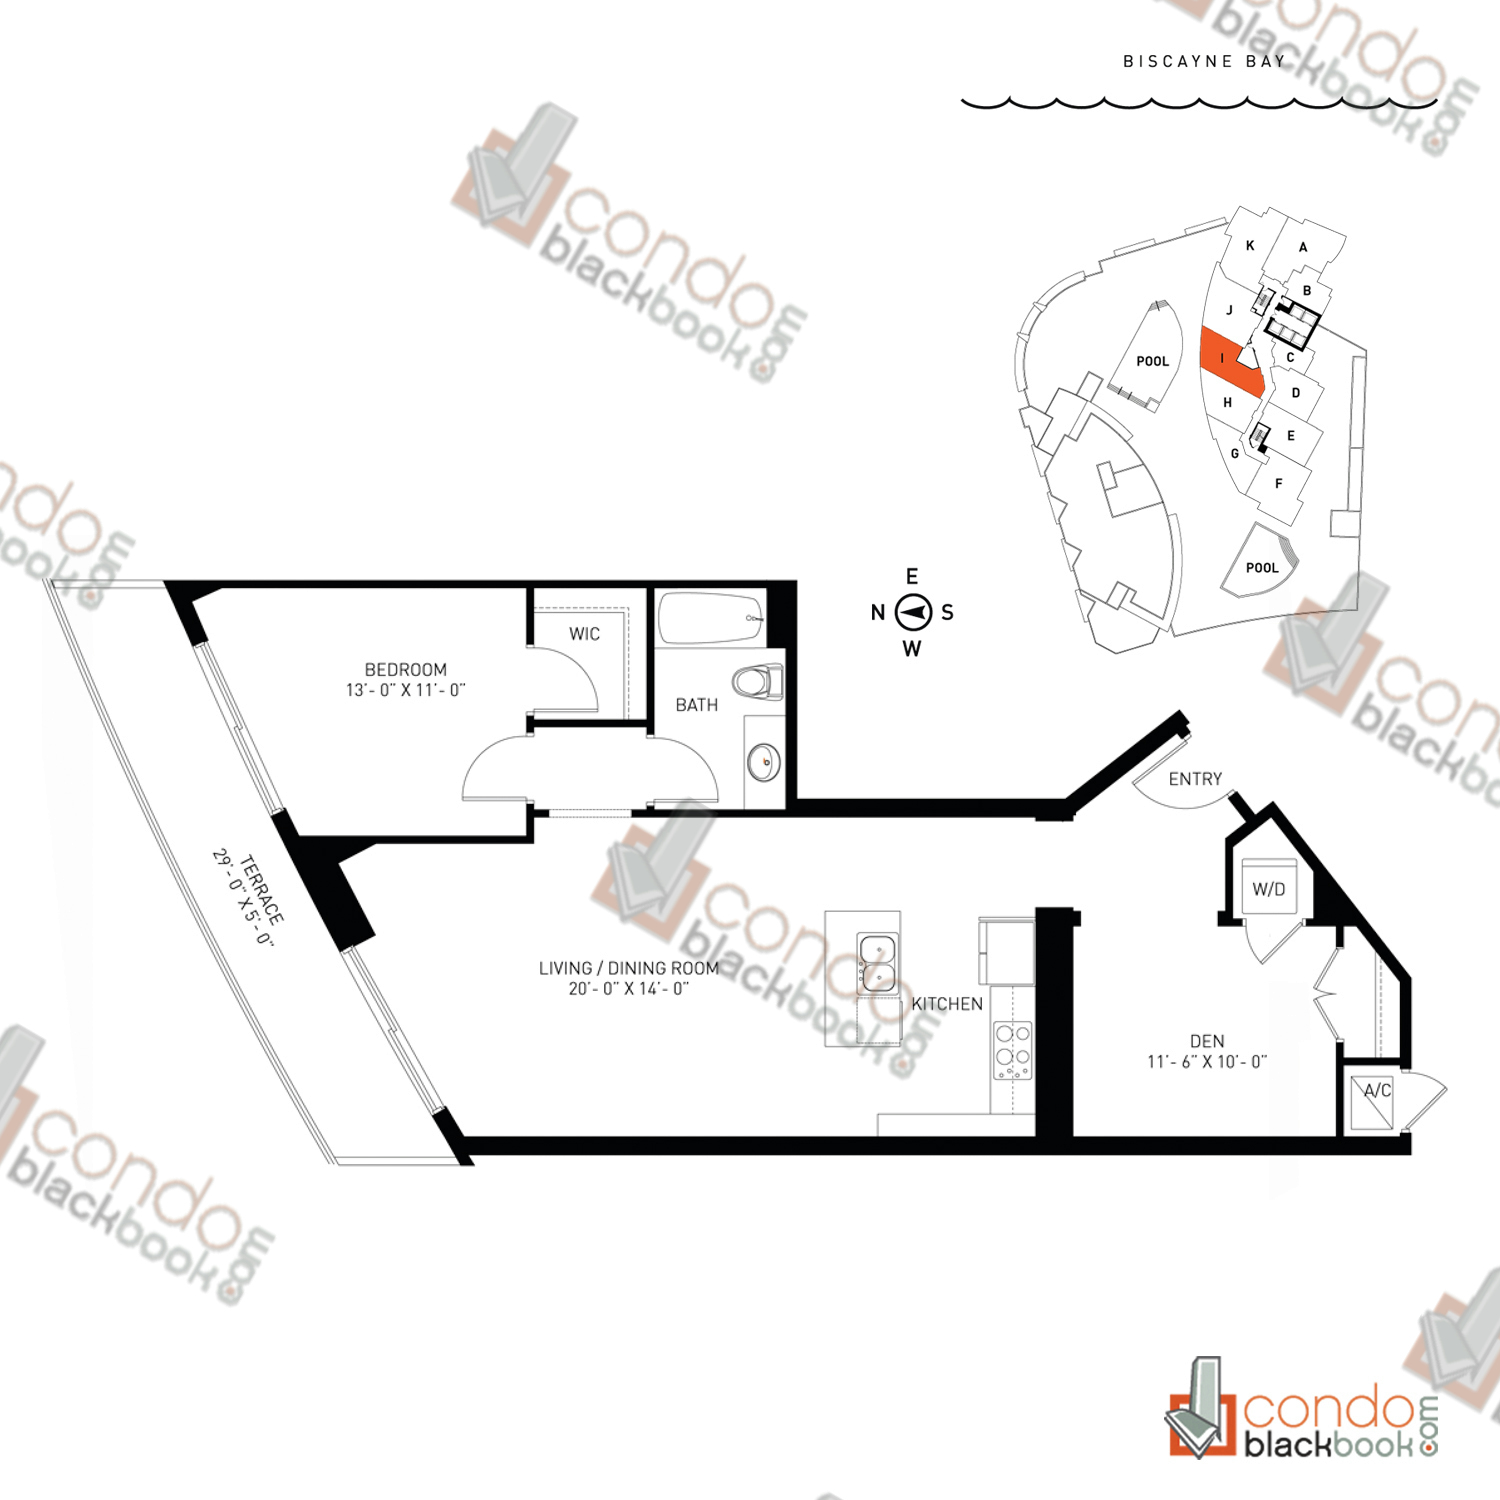 Floor plan for Quantum on the Bay Edgewater Miami, model Residence_I, line South Tower - 06, 1/1+DEN bedrooms, 951 sq ft